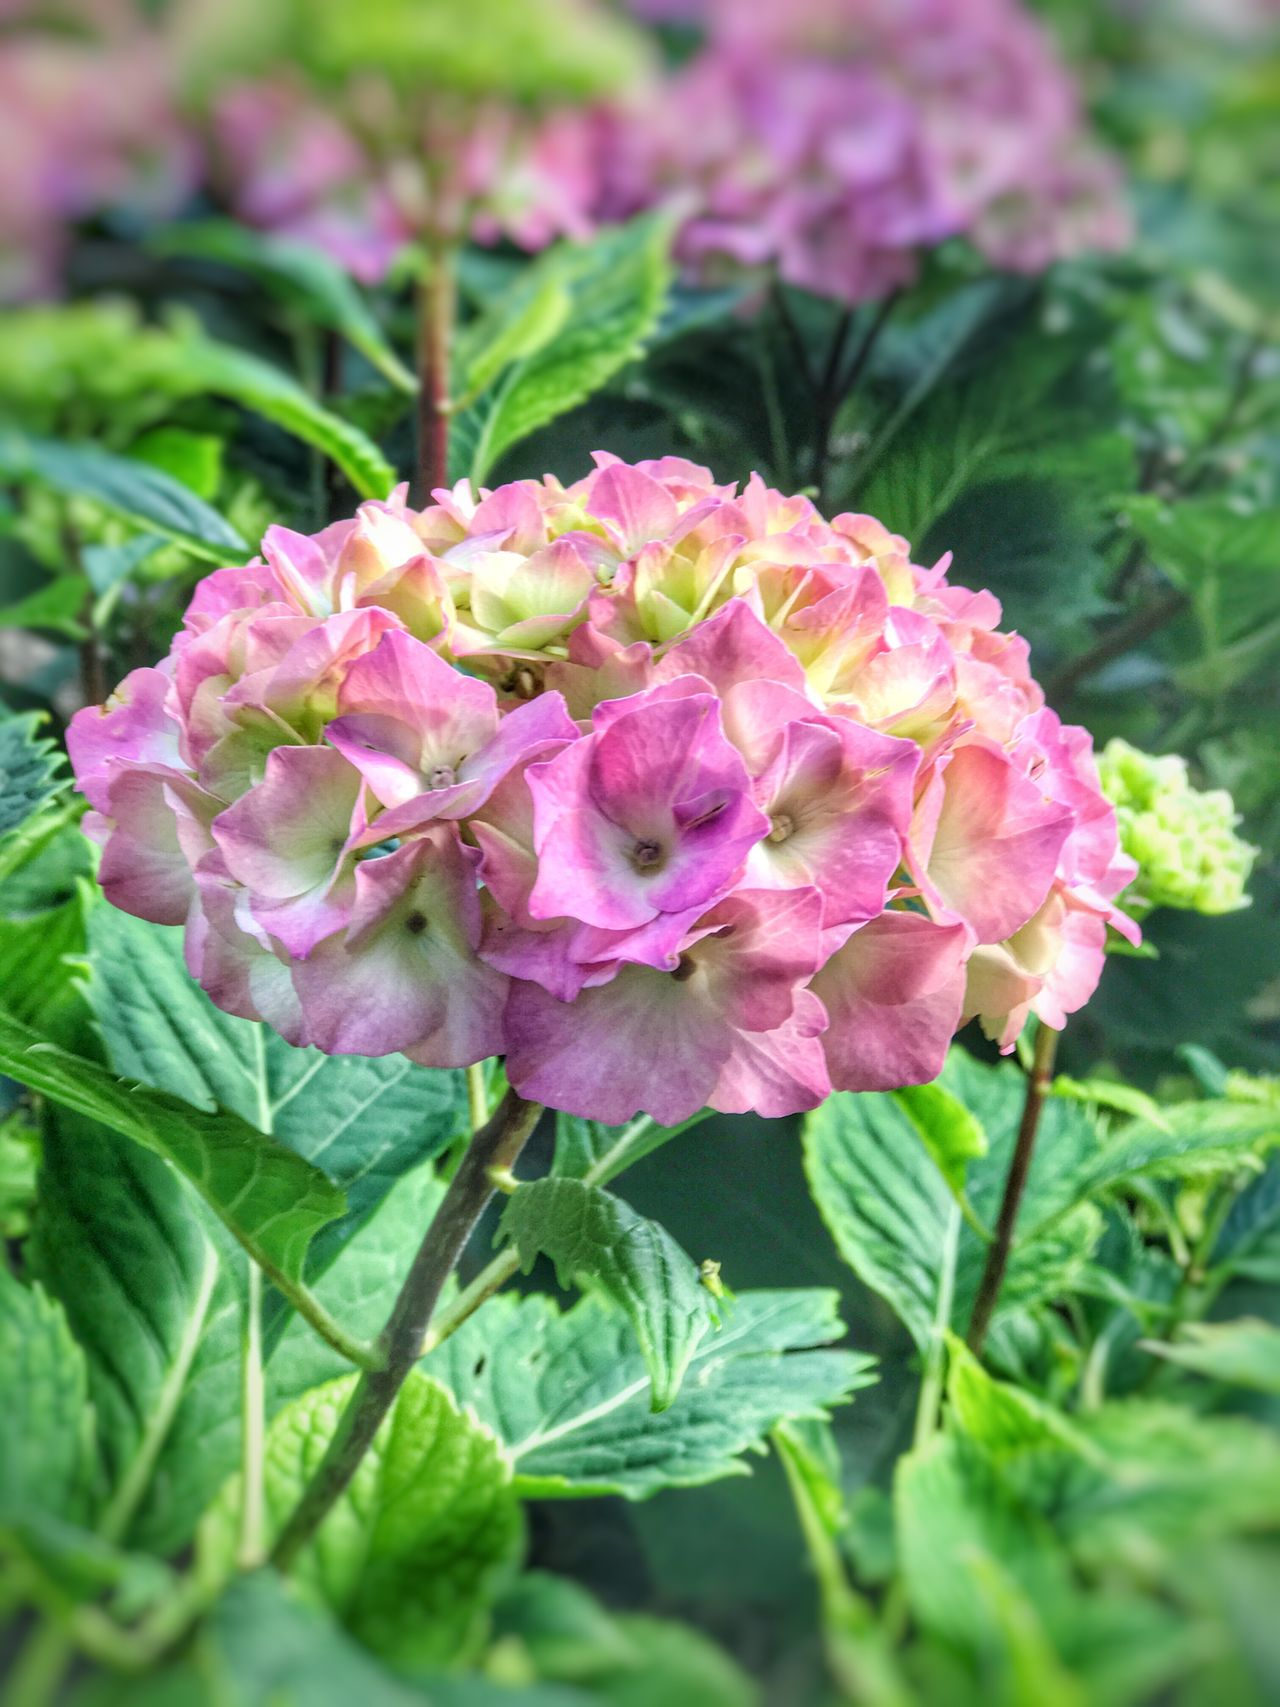 Flower Beauty In Nature Plant Fragility Growth Petal Pink Color Nature Flower Head No People Close-up Leaf Outdoors Green Color Day Focus On Foreground Blooming